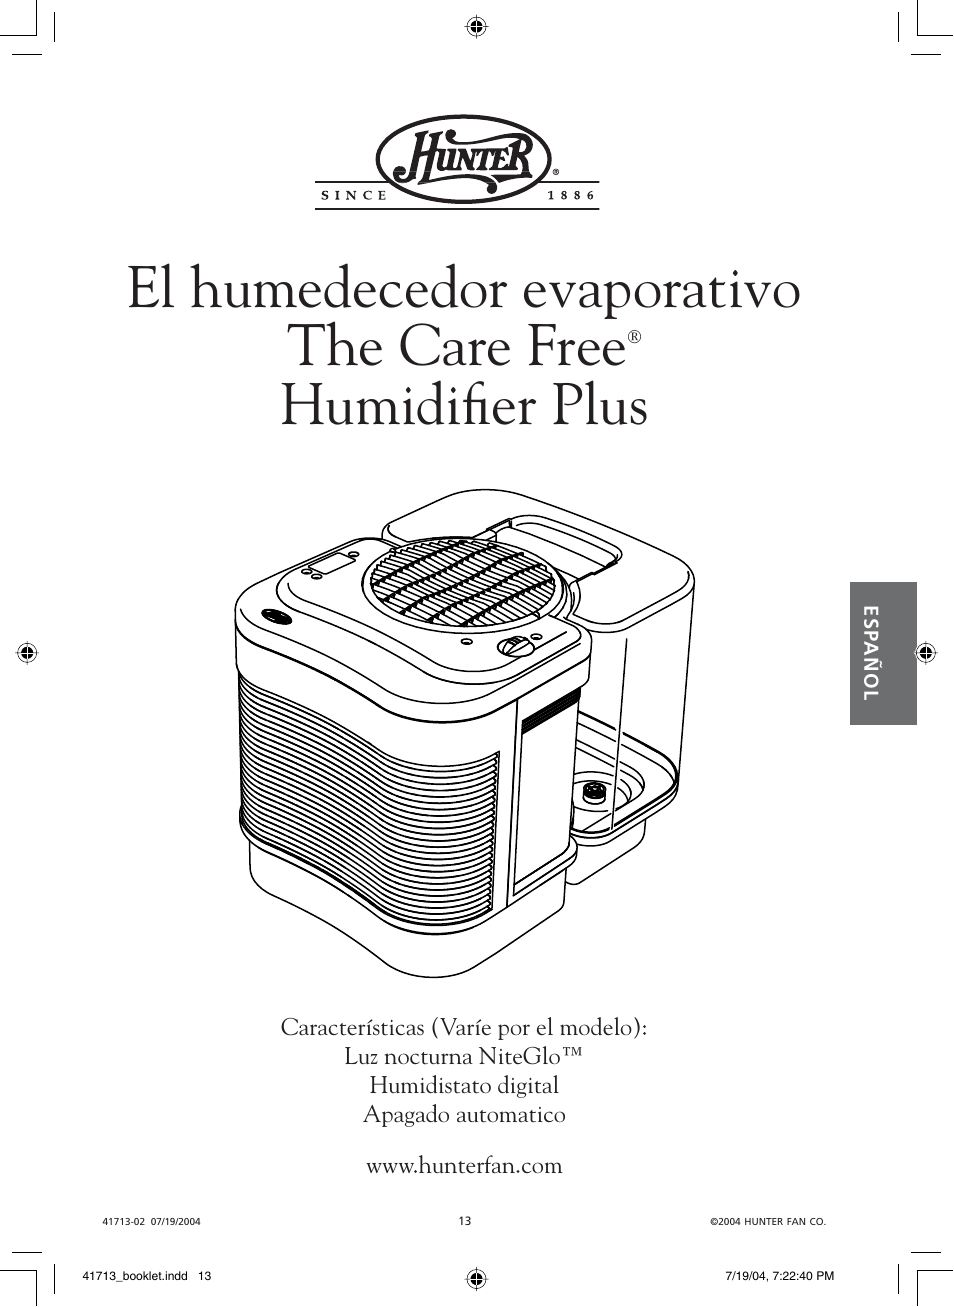 El humedecedor evaporativo the care free, Humidifi er plus